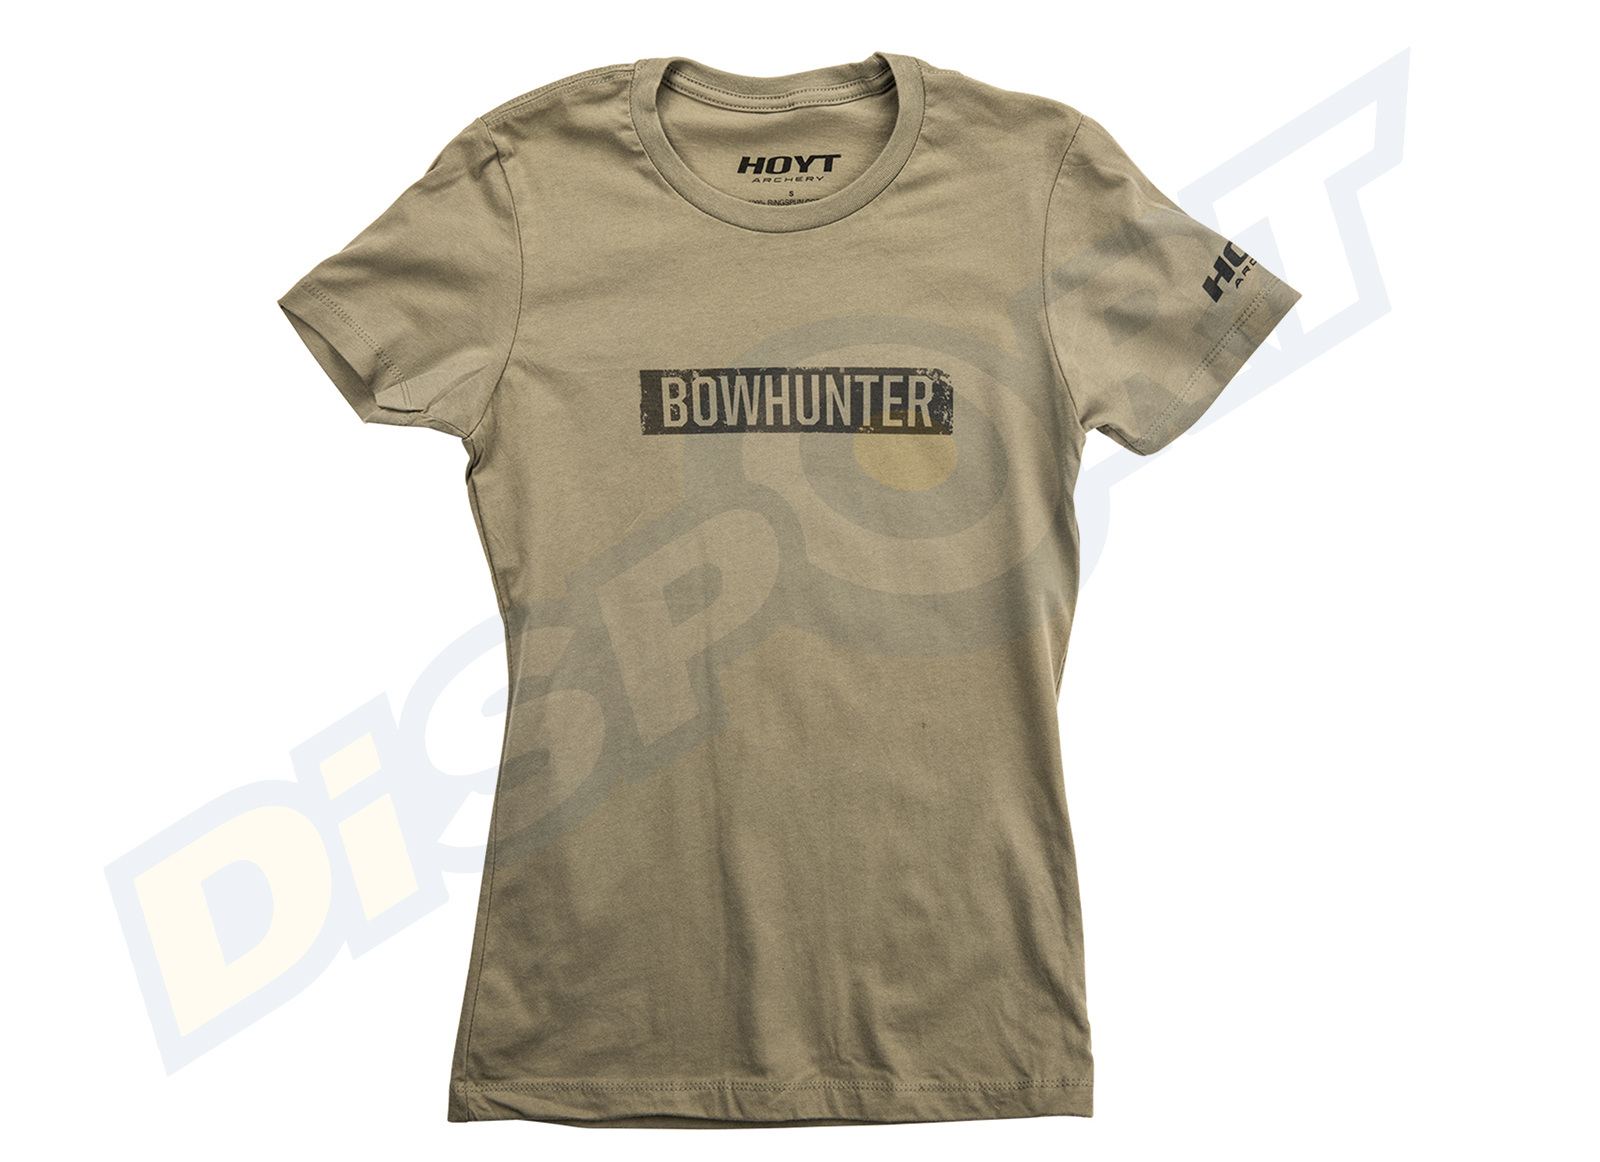 HOYT T-SHIRT DONNA BOWHUNTER